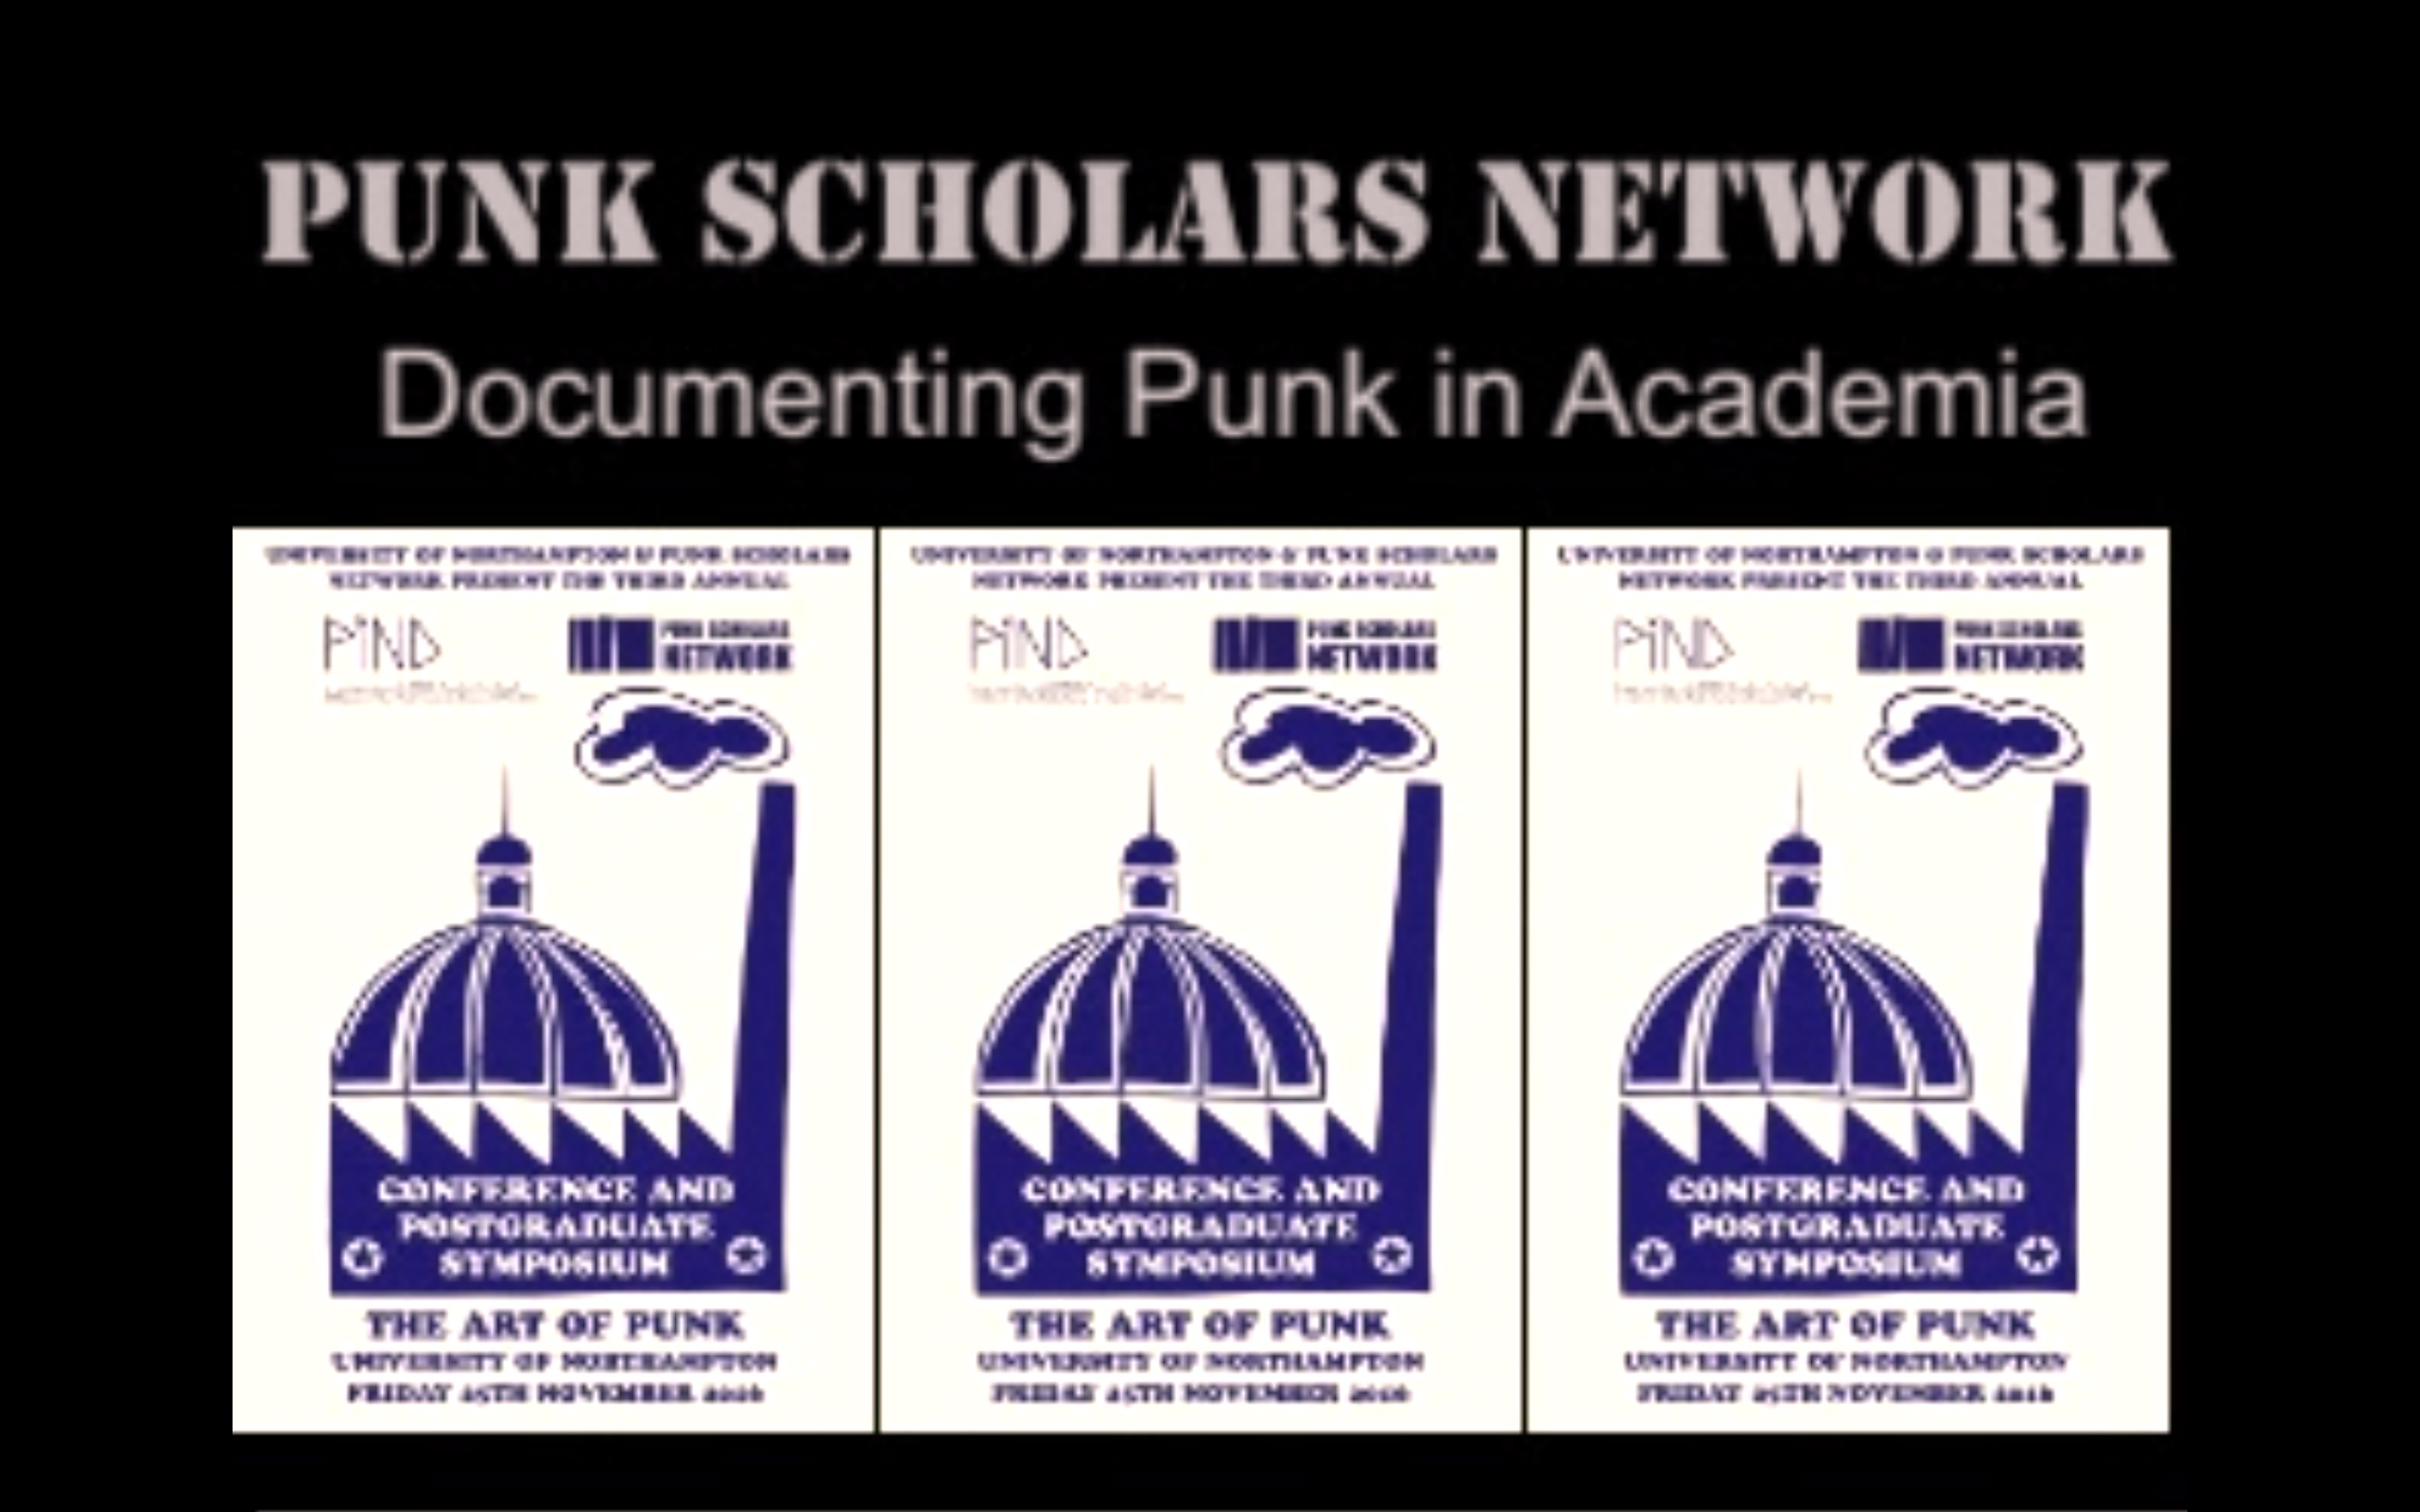 3RD ANNUAL PUNK SCHOLARS NETWORK SYMPOSIUM